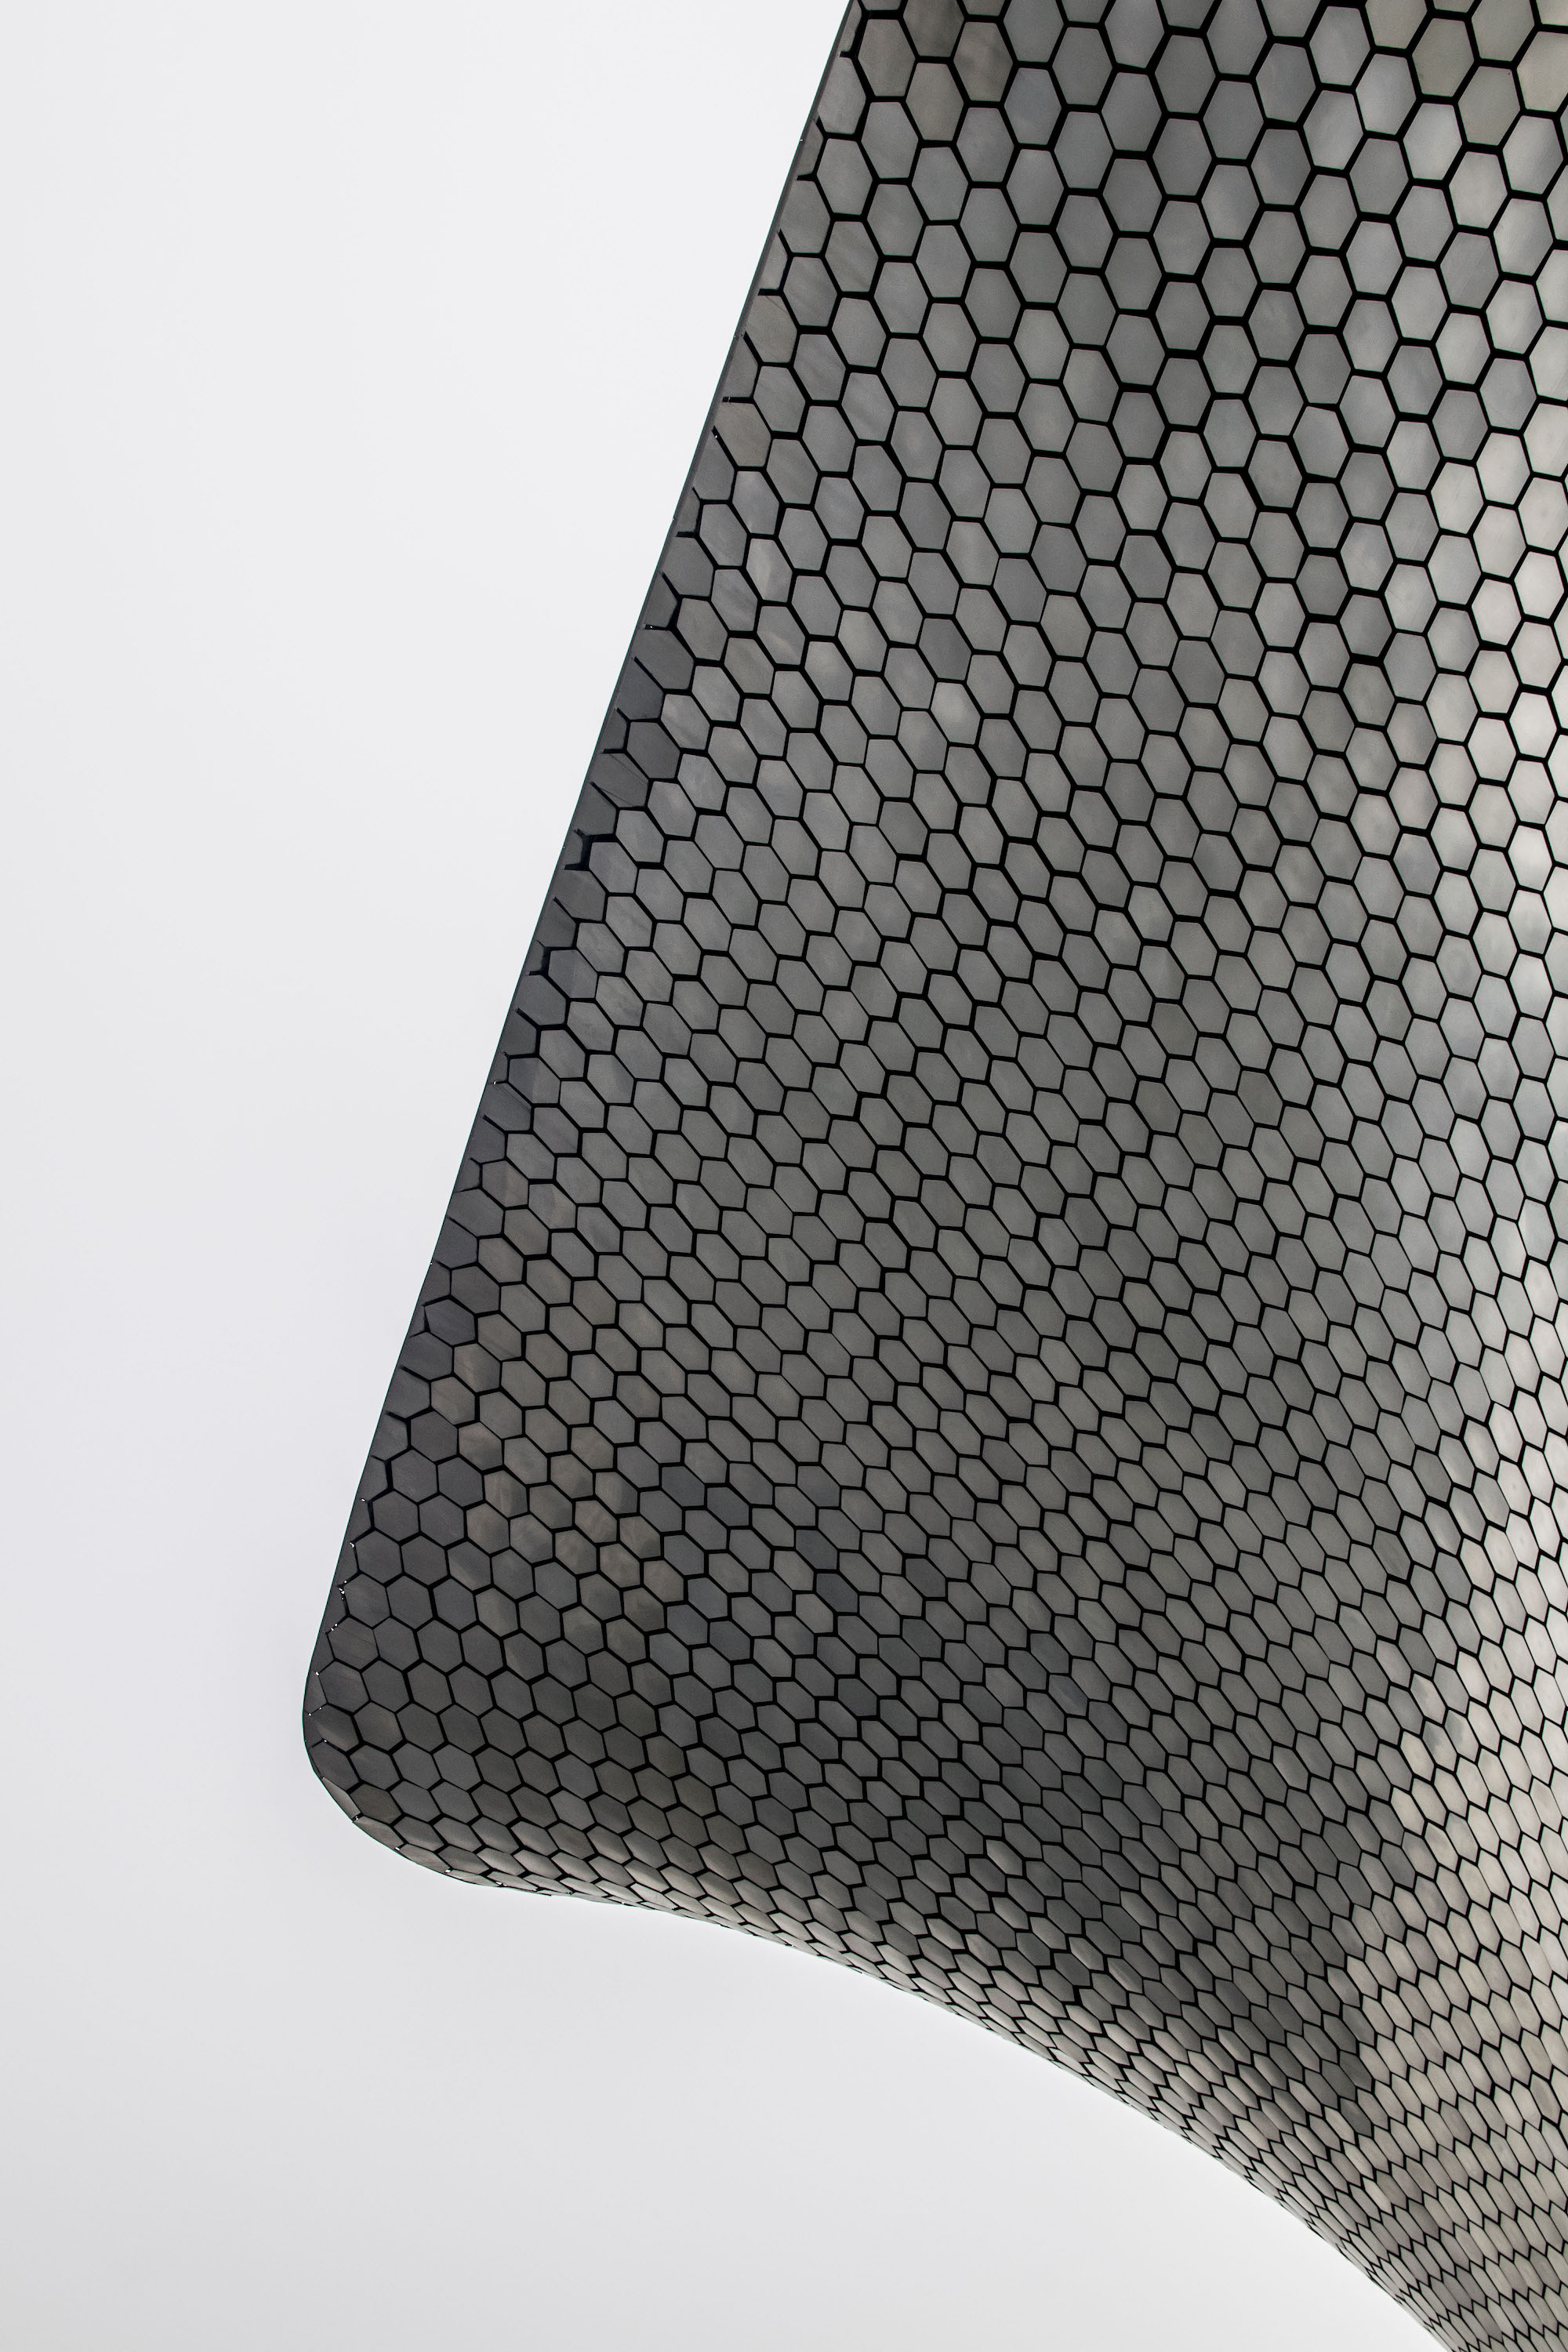 Soumaya Museo _ Mexico City _ LovaLinda Photography